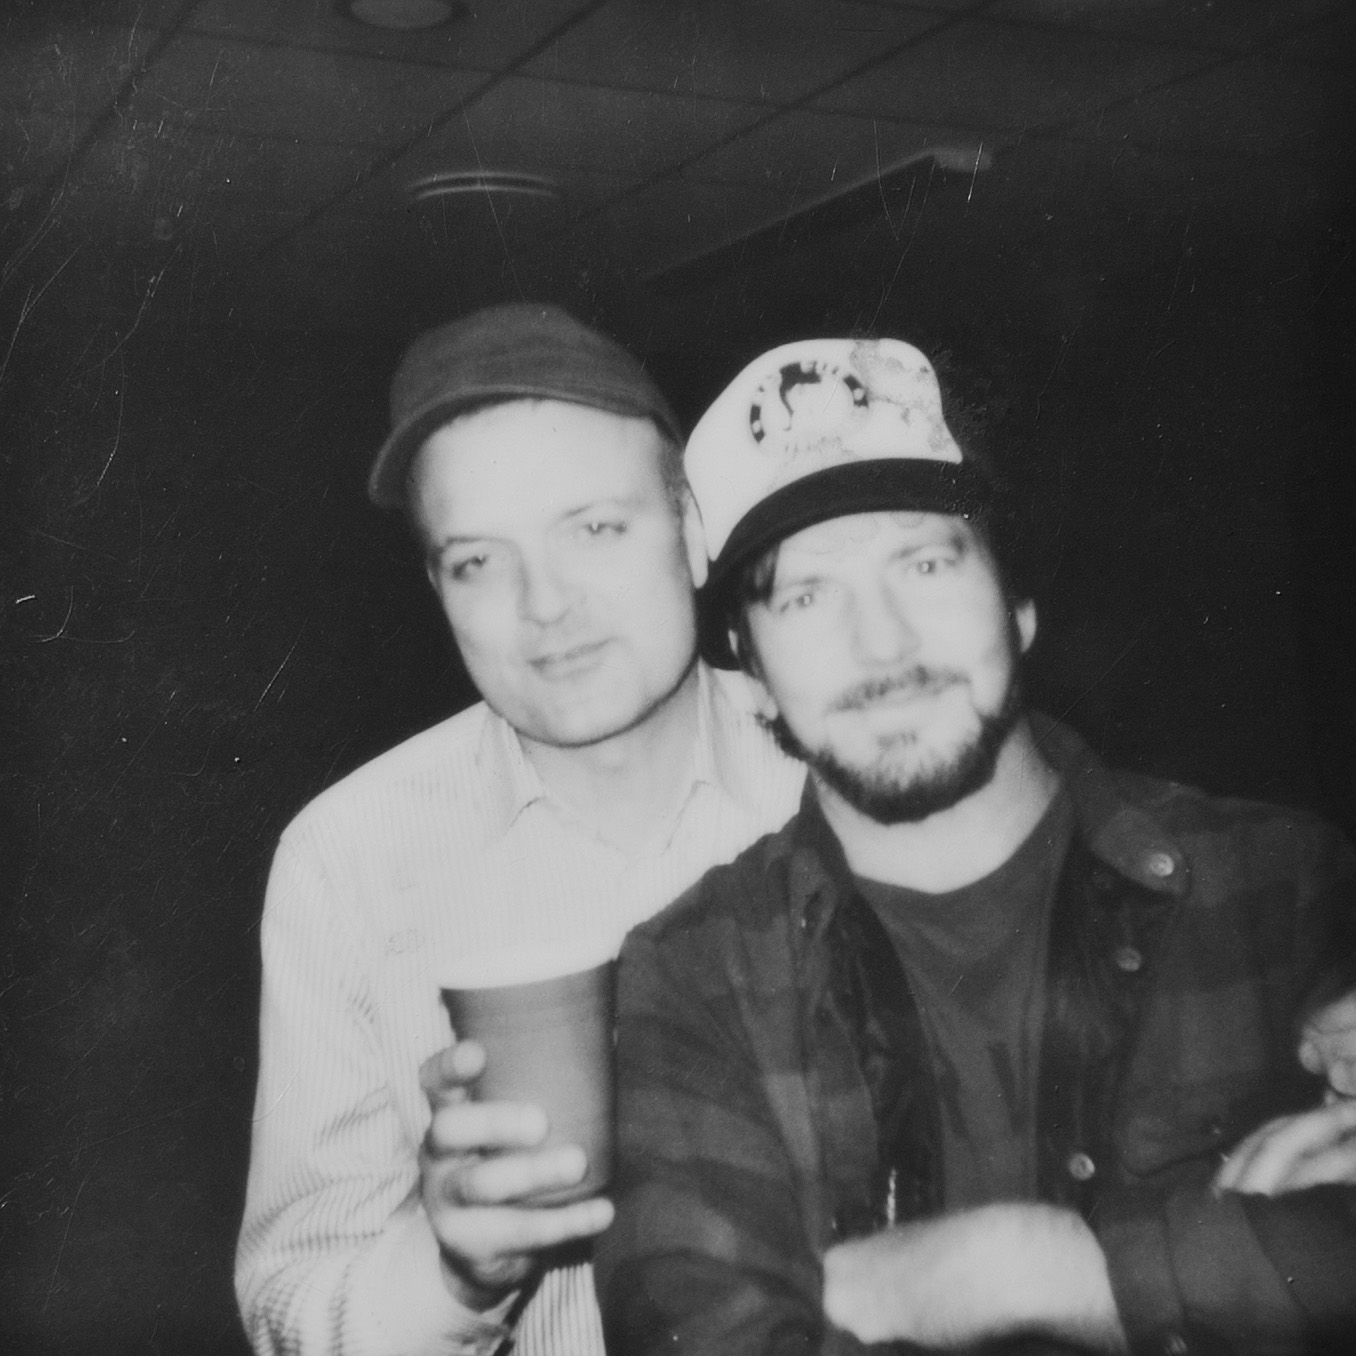 The drunk and the straight arrow. Henrik Tuxen &Eddie Vedder. Stockholm, Sweden. June 28, 2014. Polaroid photo: Mike McCready. (From chapter 16)